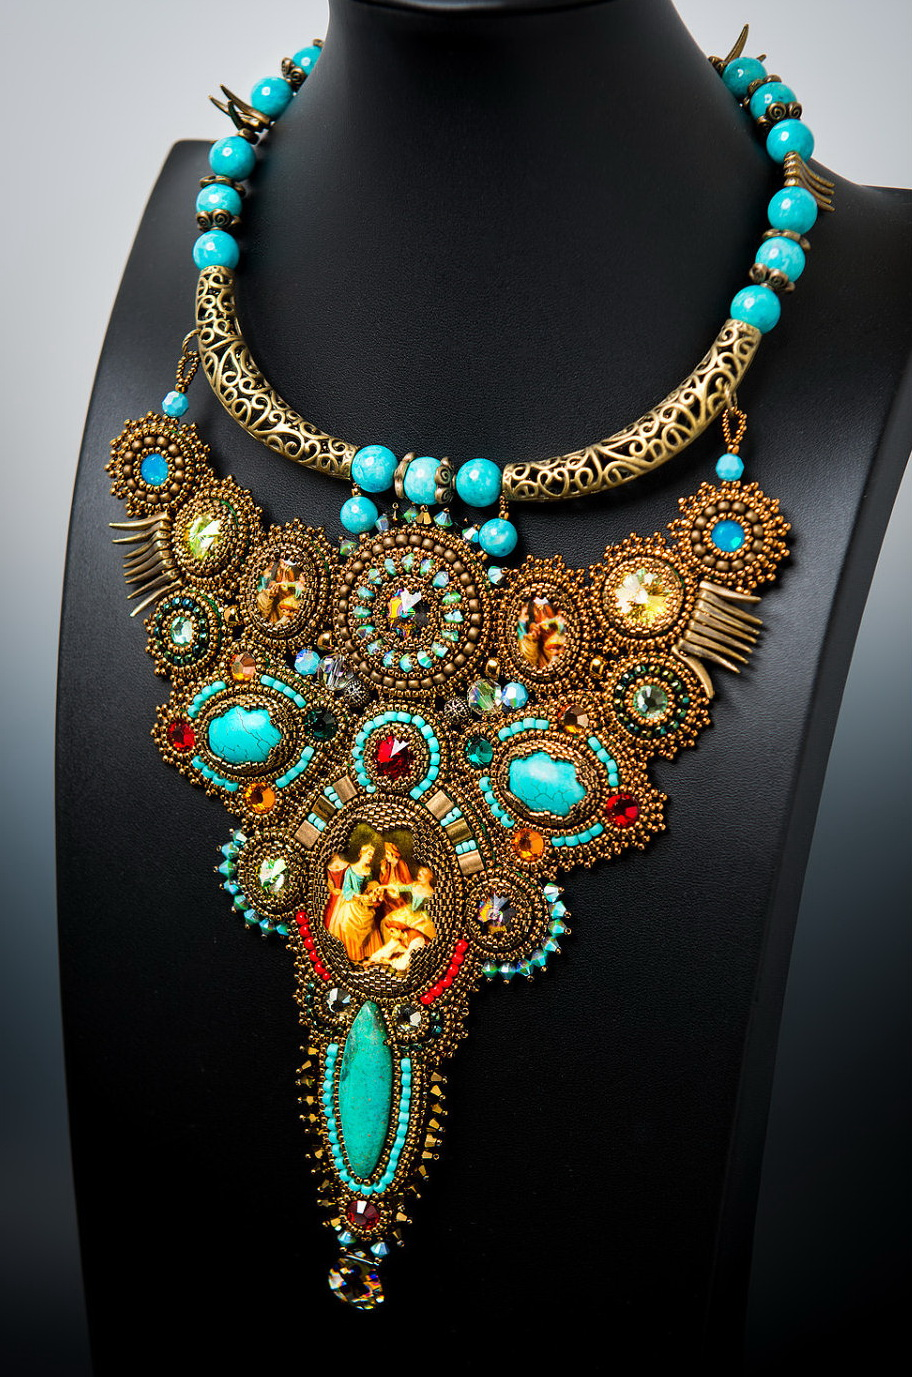 Beautiful bead embroidered jewelry by Guzialia Reed